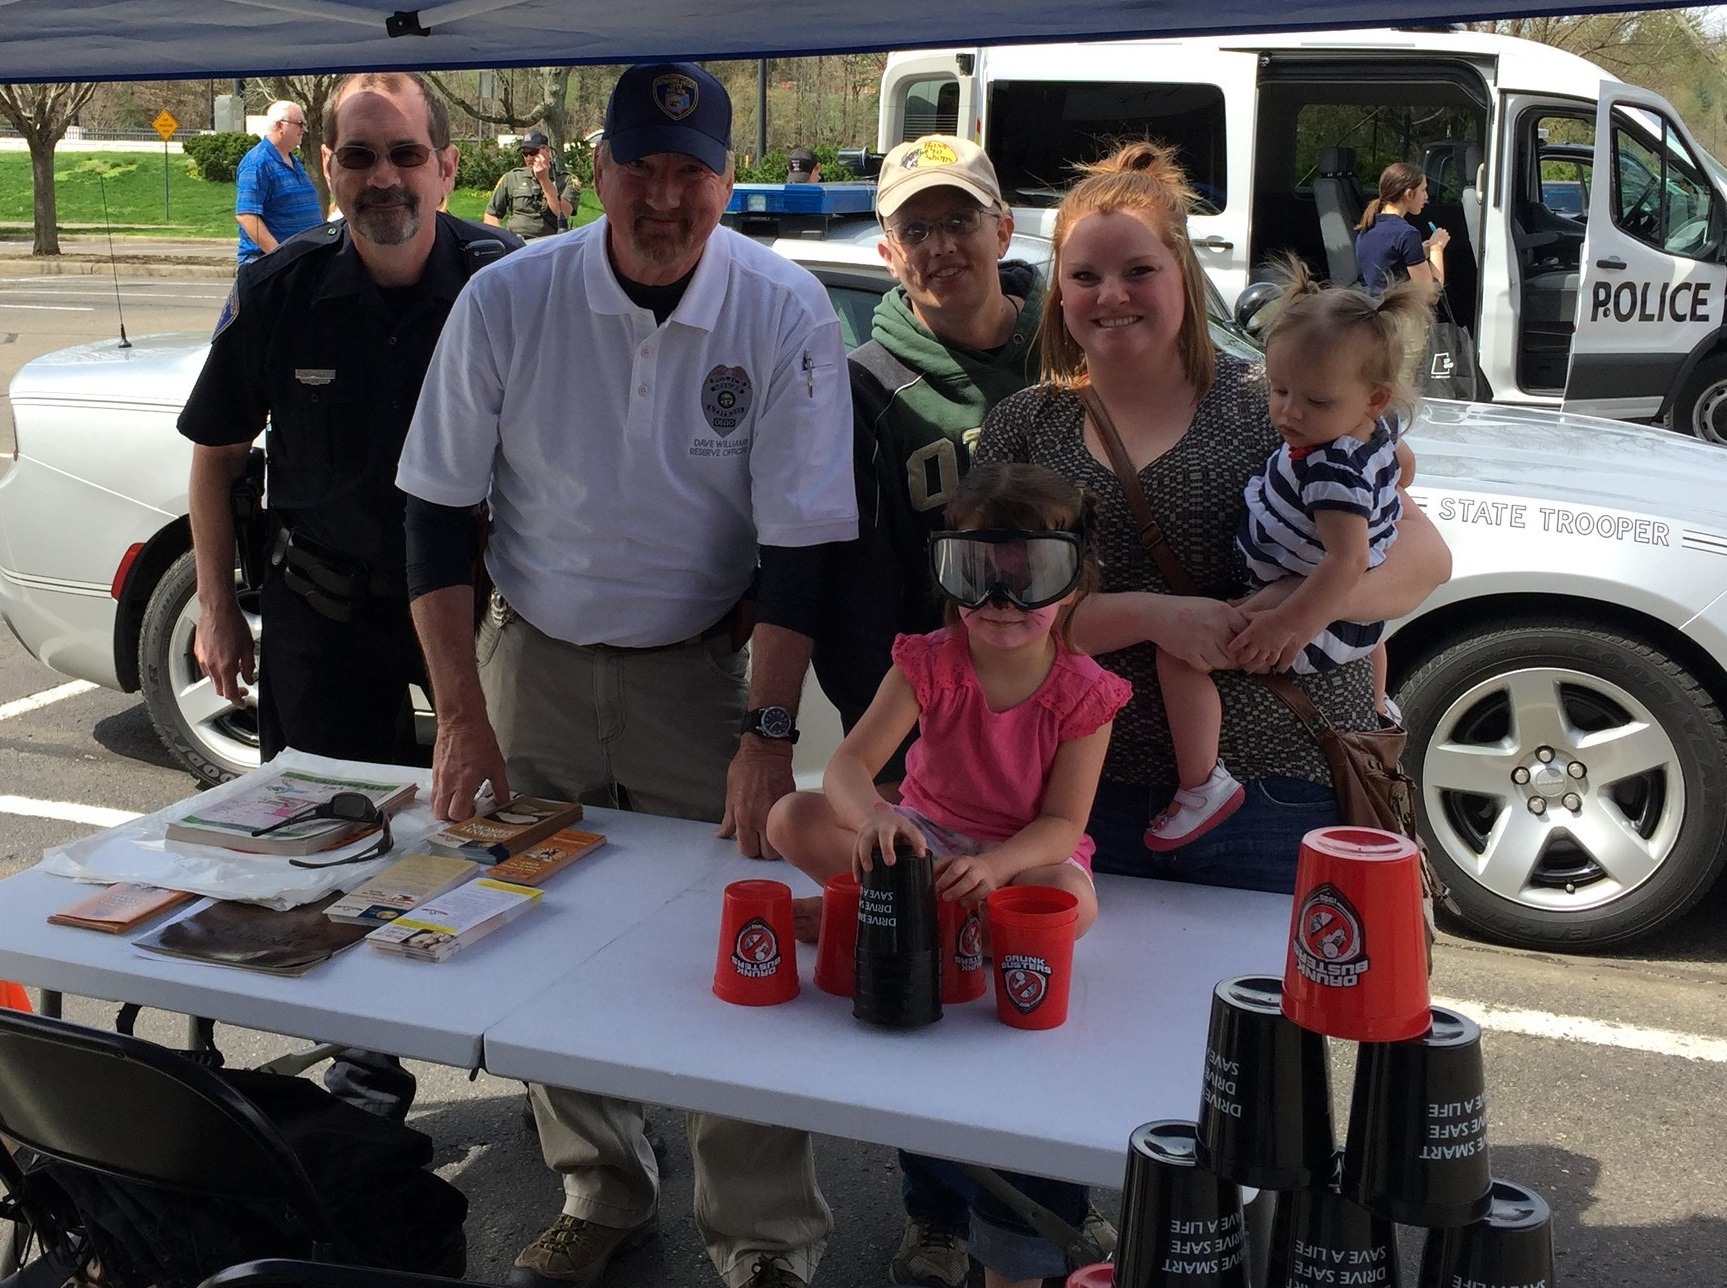 Pictured left to right: Athens Police Officer Bob Filar, Reserve Officer and SC District Elks Drug Awareness Chairman Dave Williams, Elks member Ty Smathers, girl with goggles on Maddison Prather, mother Abbi Prather, holding child Makenna Prather.